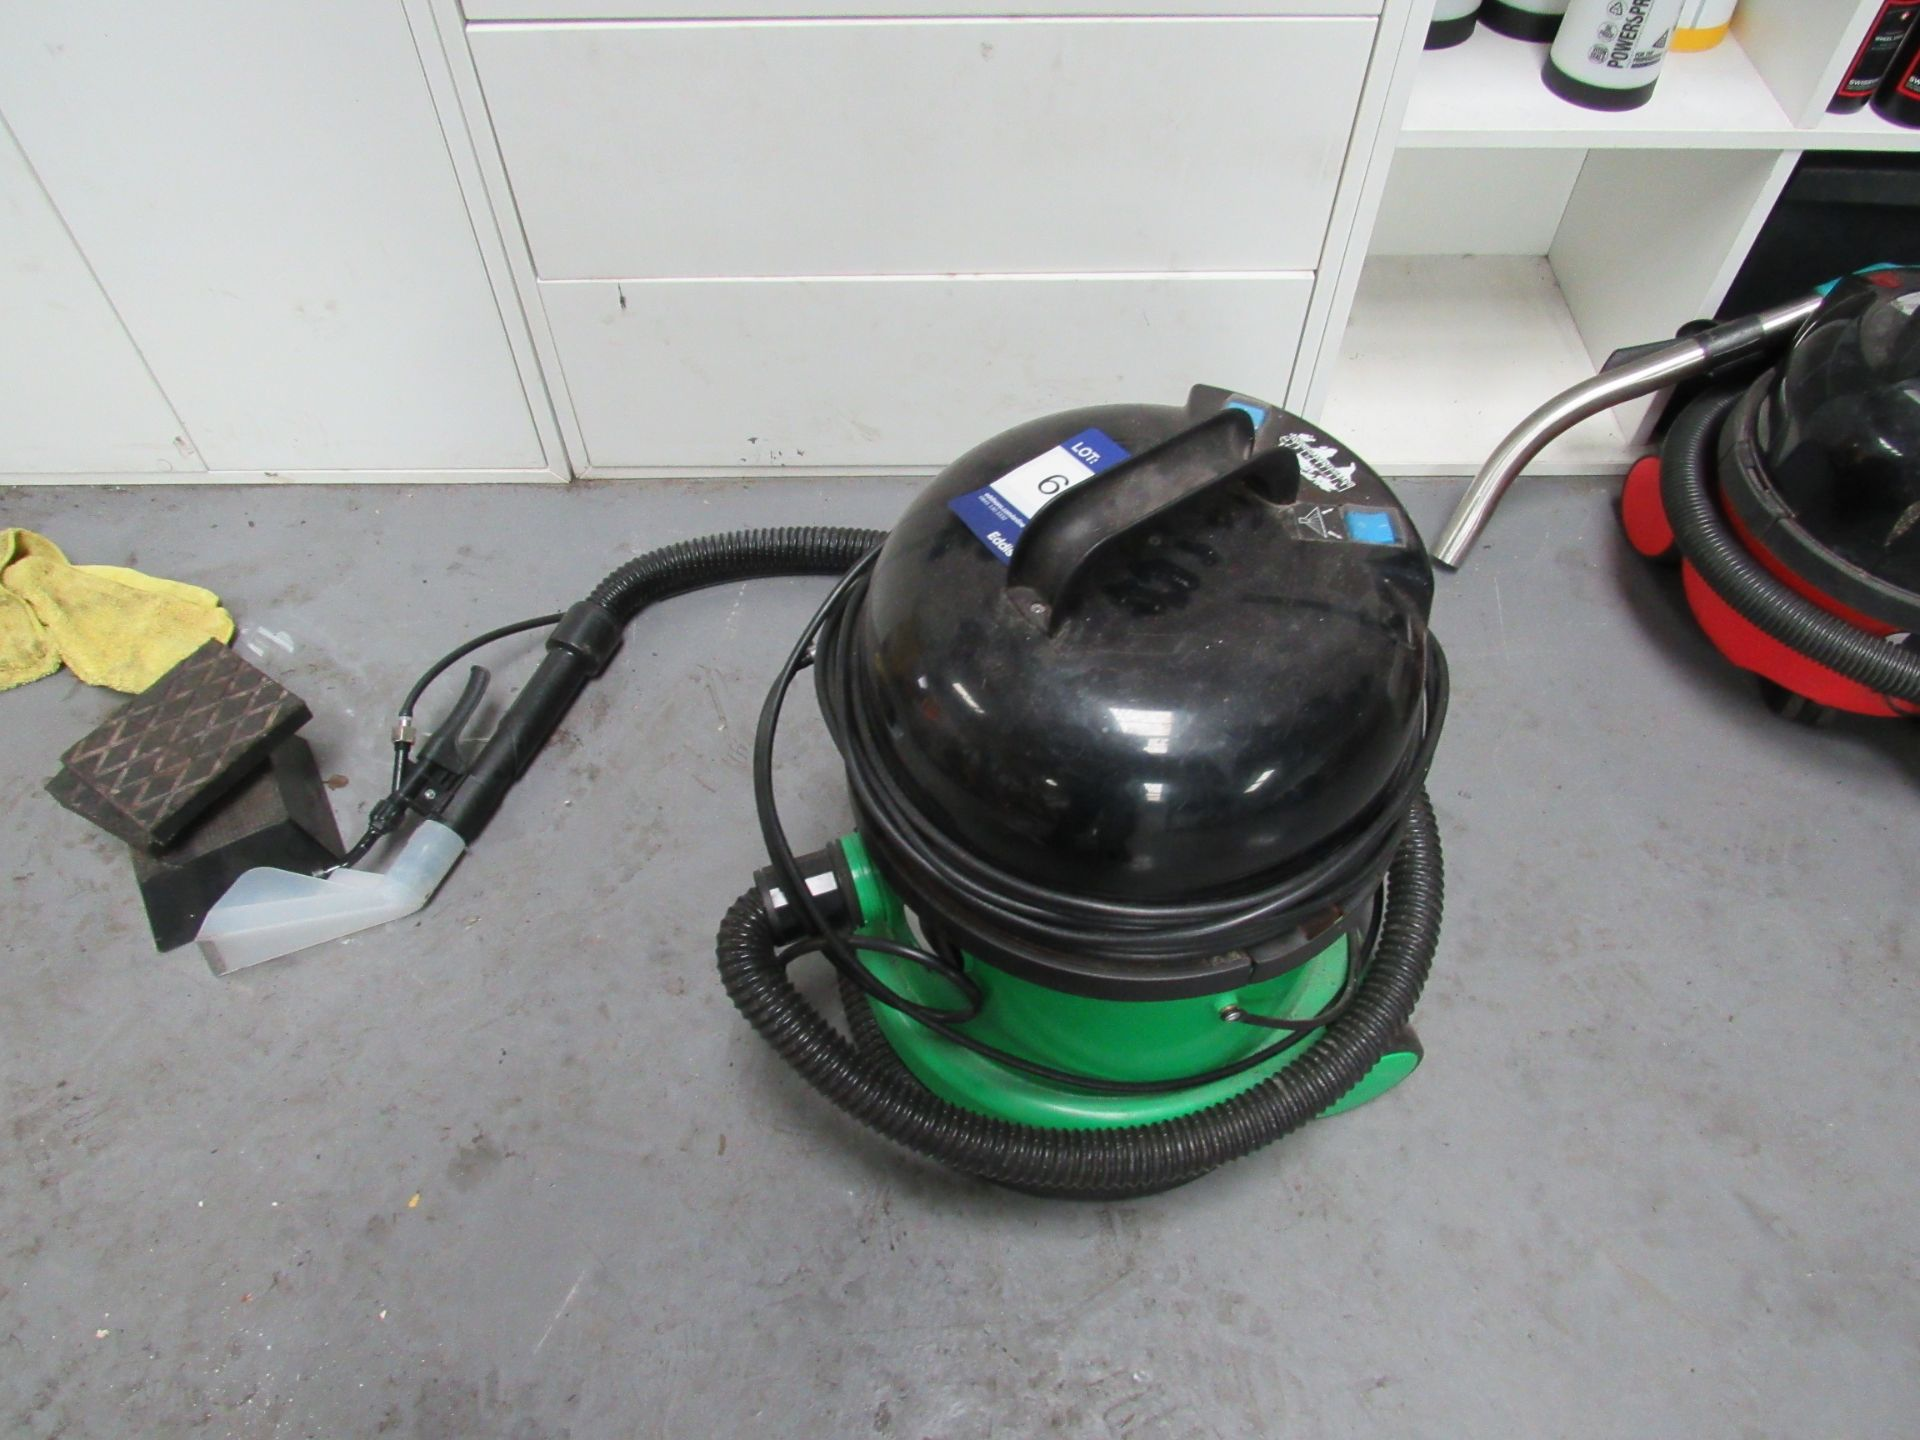 Lot 68 - Numatic GVE 370-2 Wash and Dry Vacuum (Located at Unit 11)